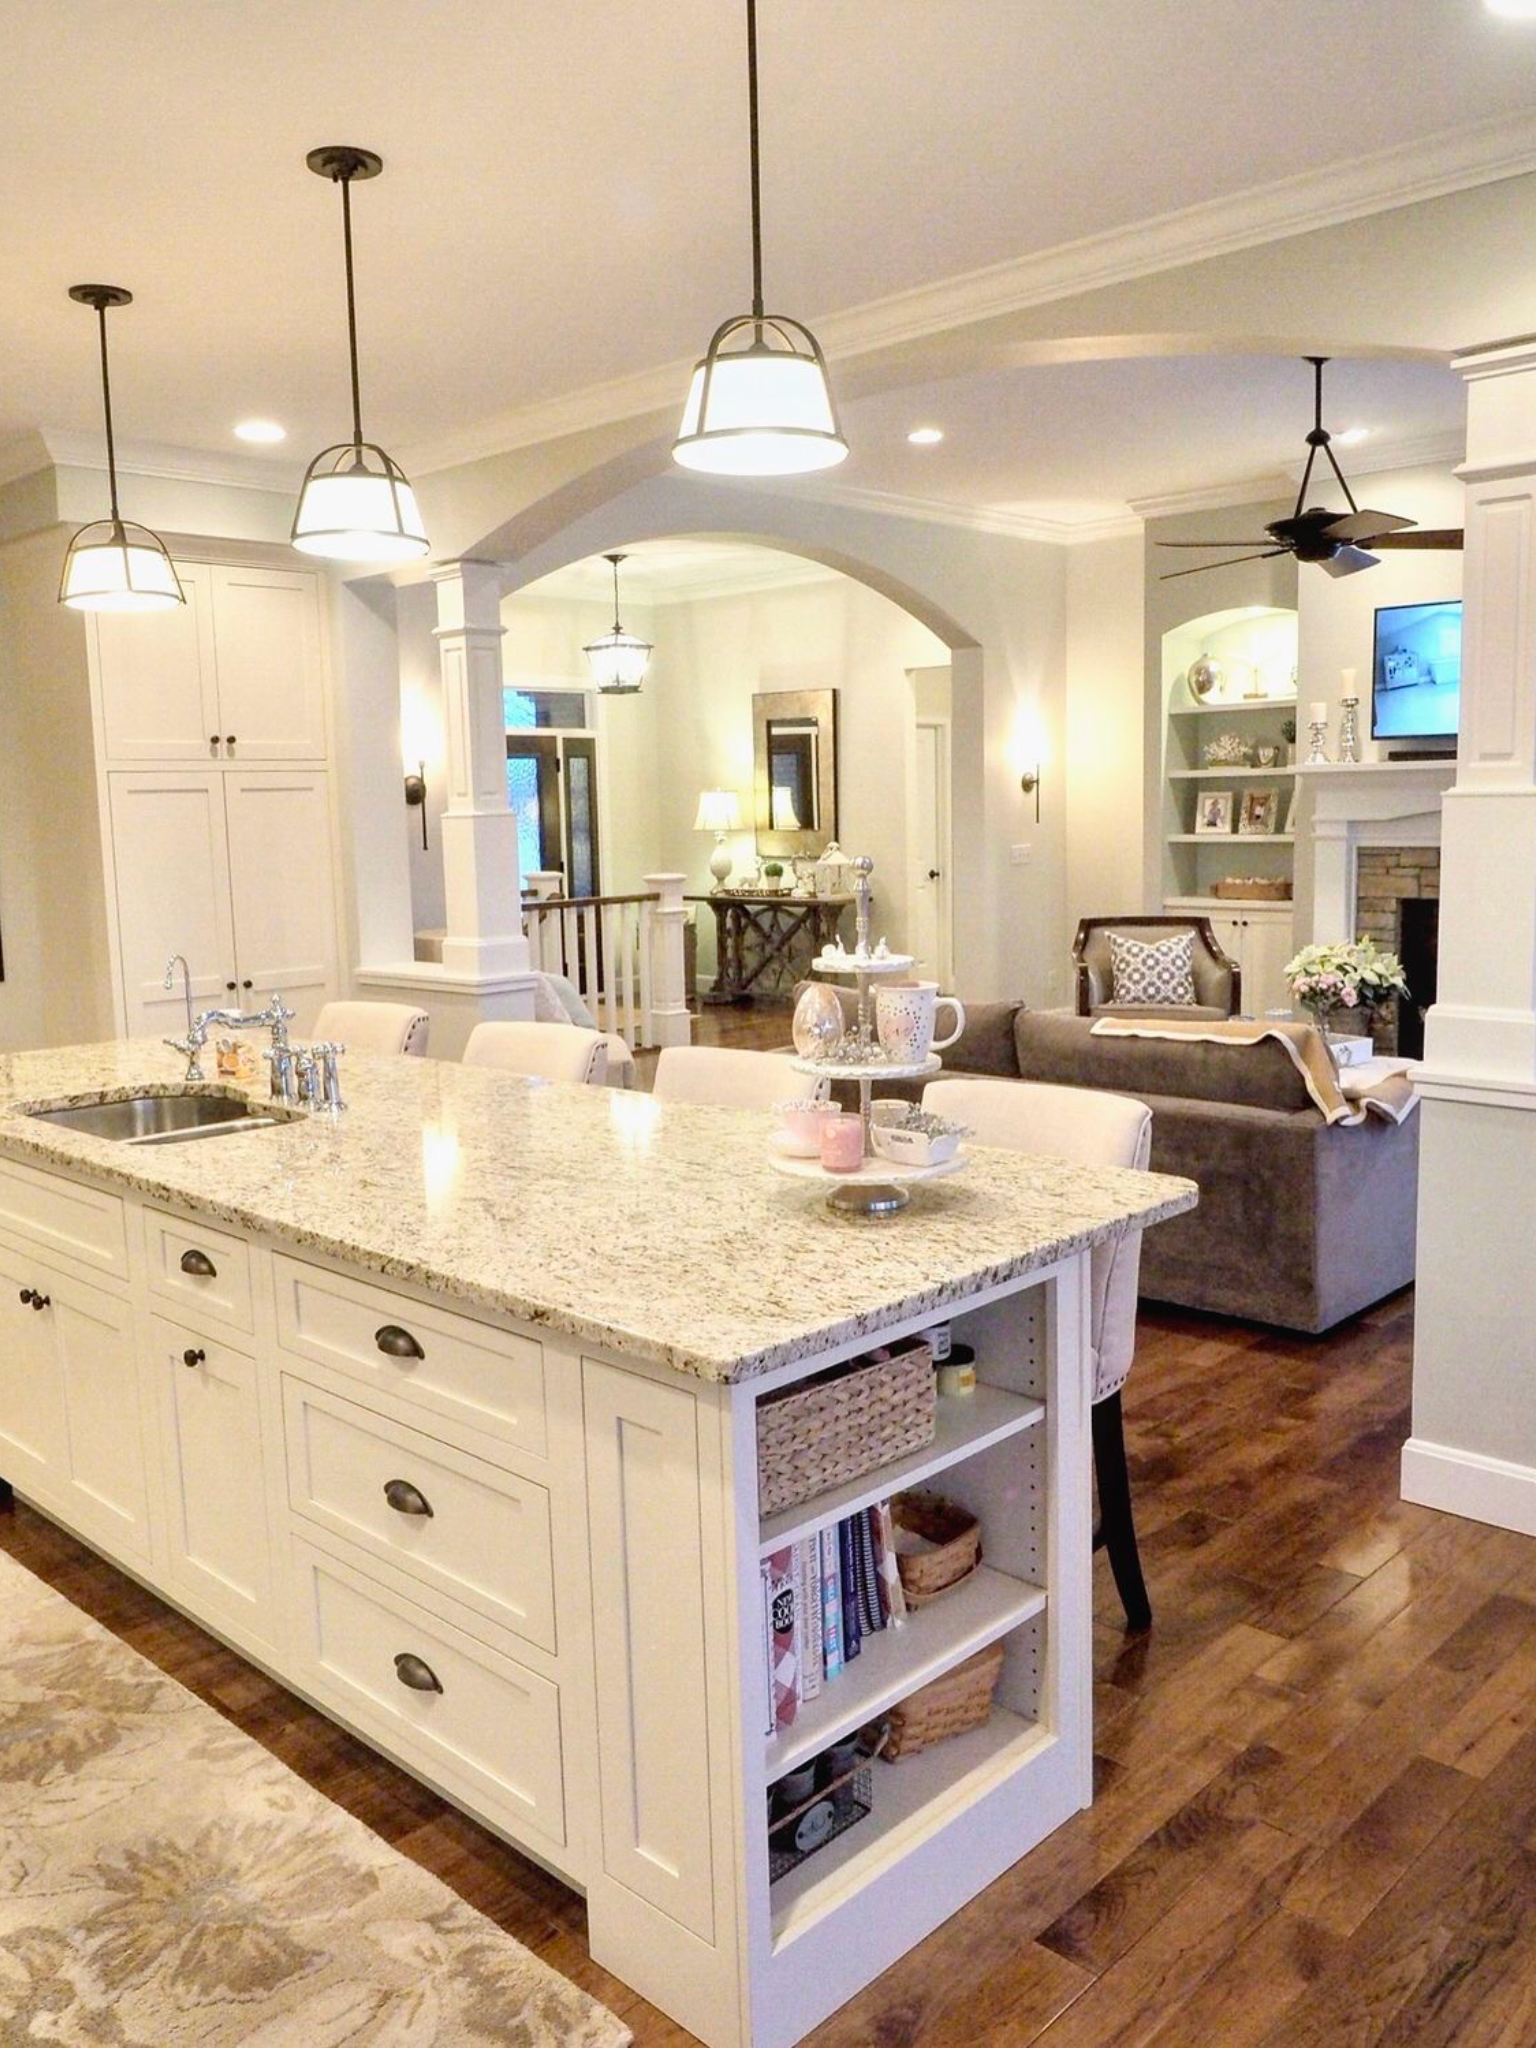 Off White Kitchen Images Alluring White Kitchen Offwhite Cabinets Sherwin Williams Conservative Design Decoration